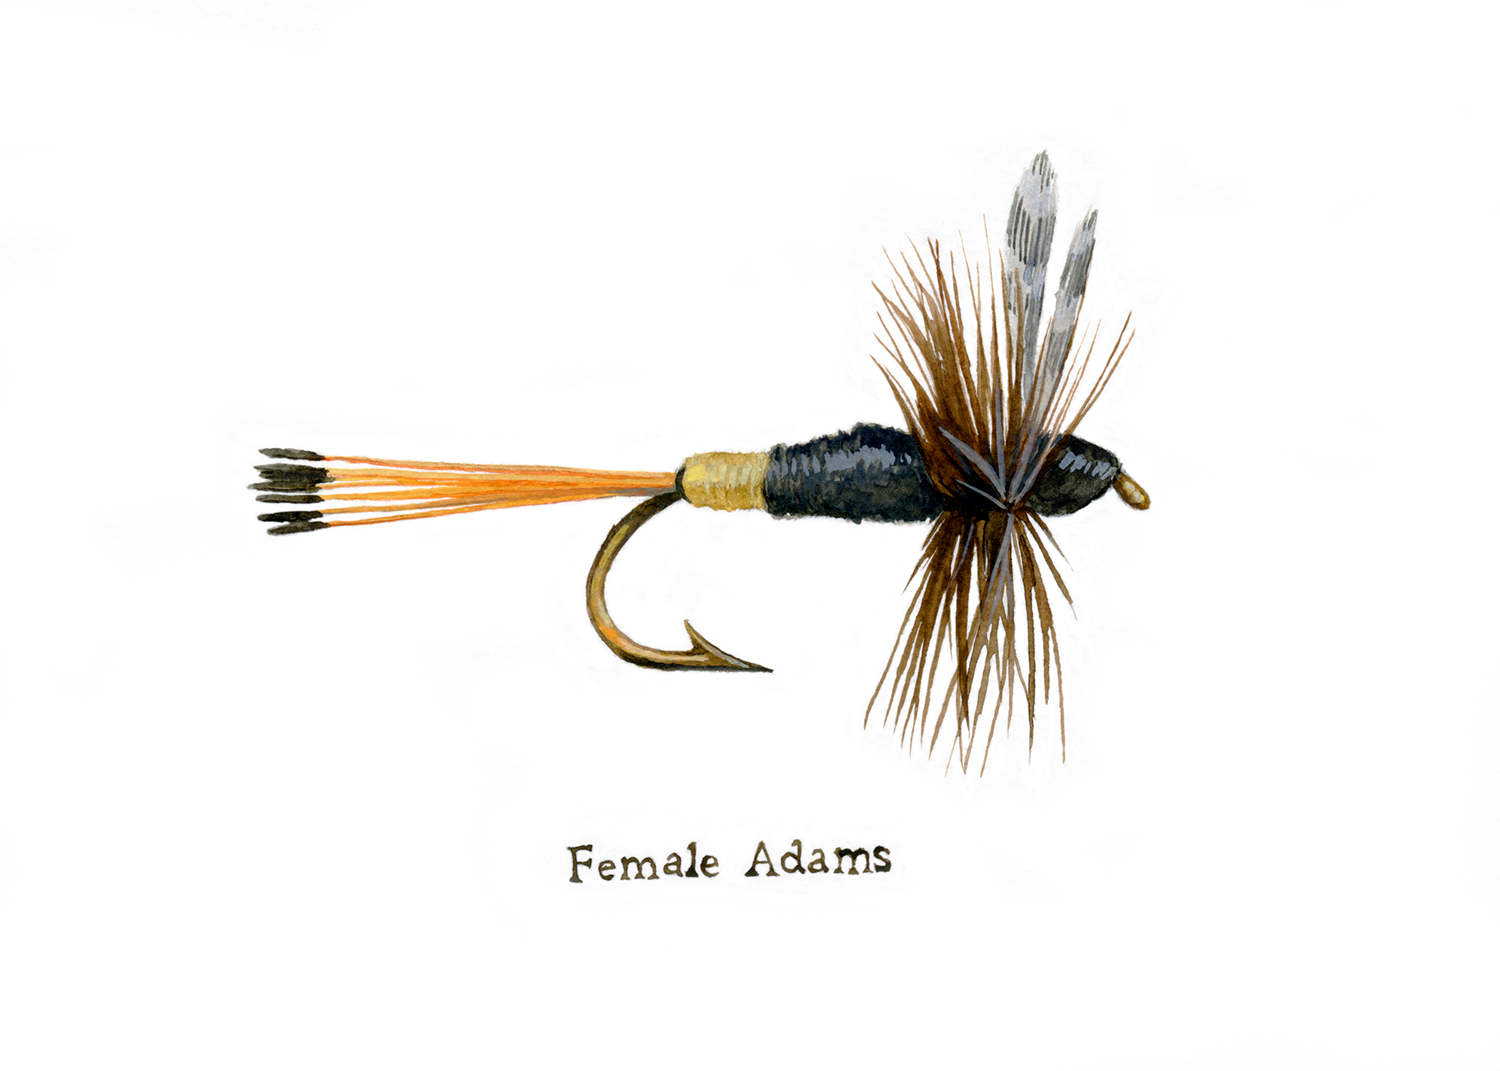 Female Adams